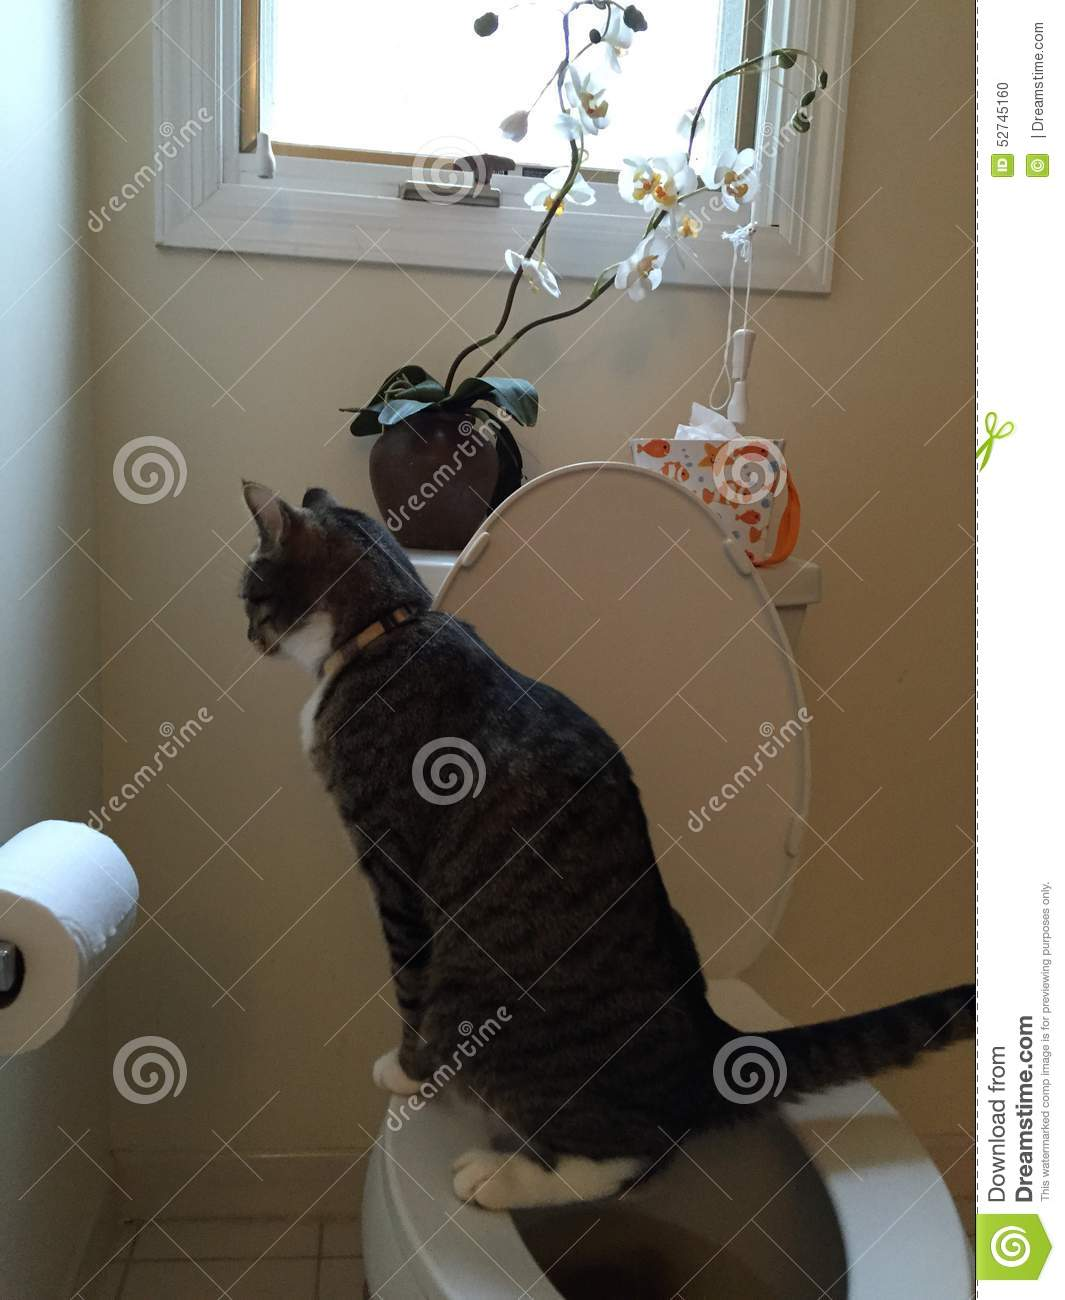 Charlie Cat Urinating On Toilet Stock Photo - Image of ...